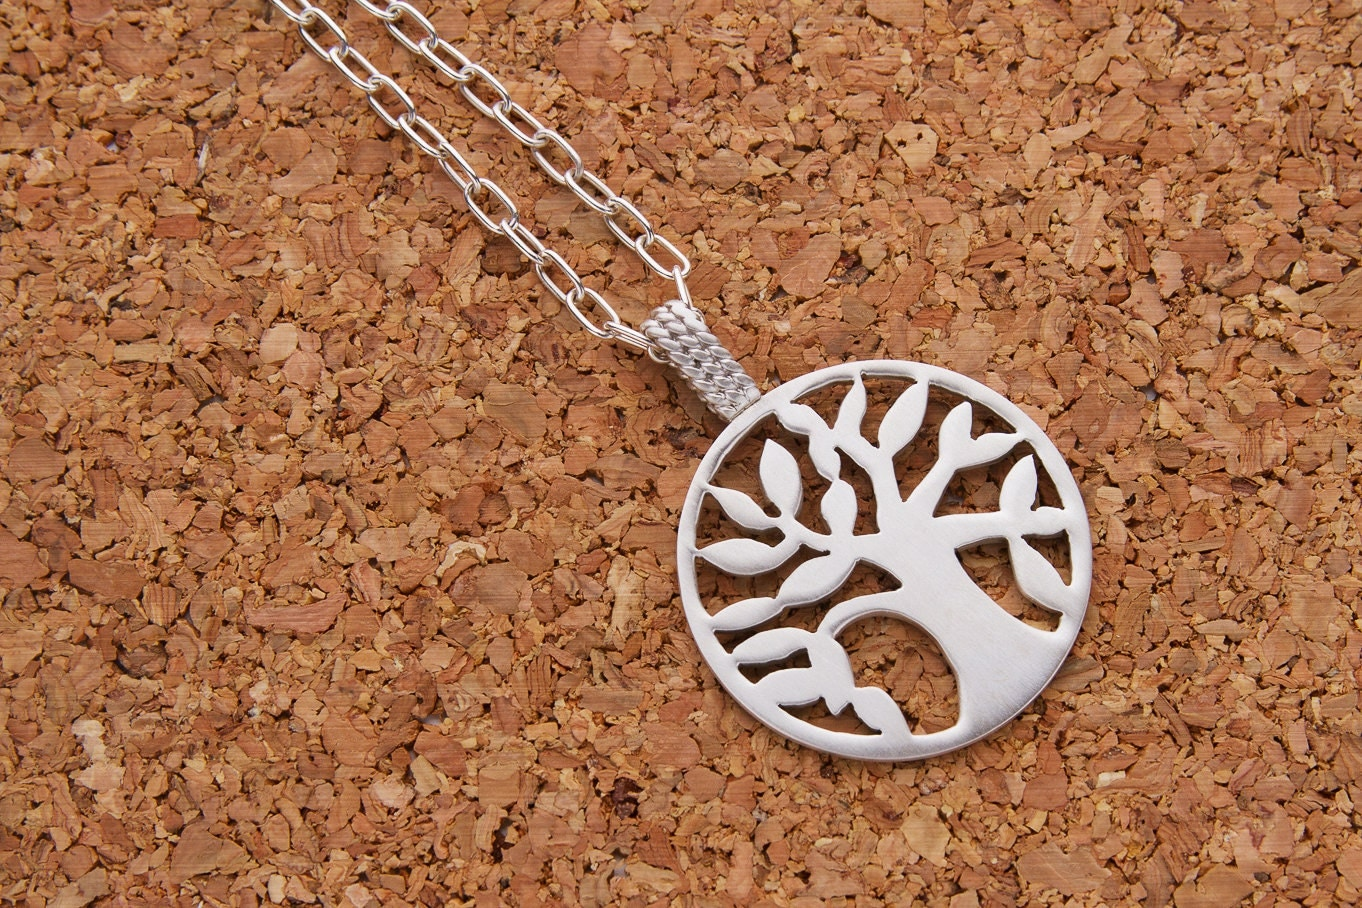 Argentium Silver Tree of Life Pendant with Sterling Silver Chain